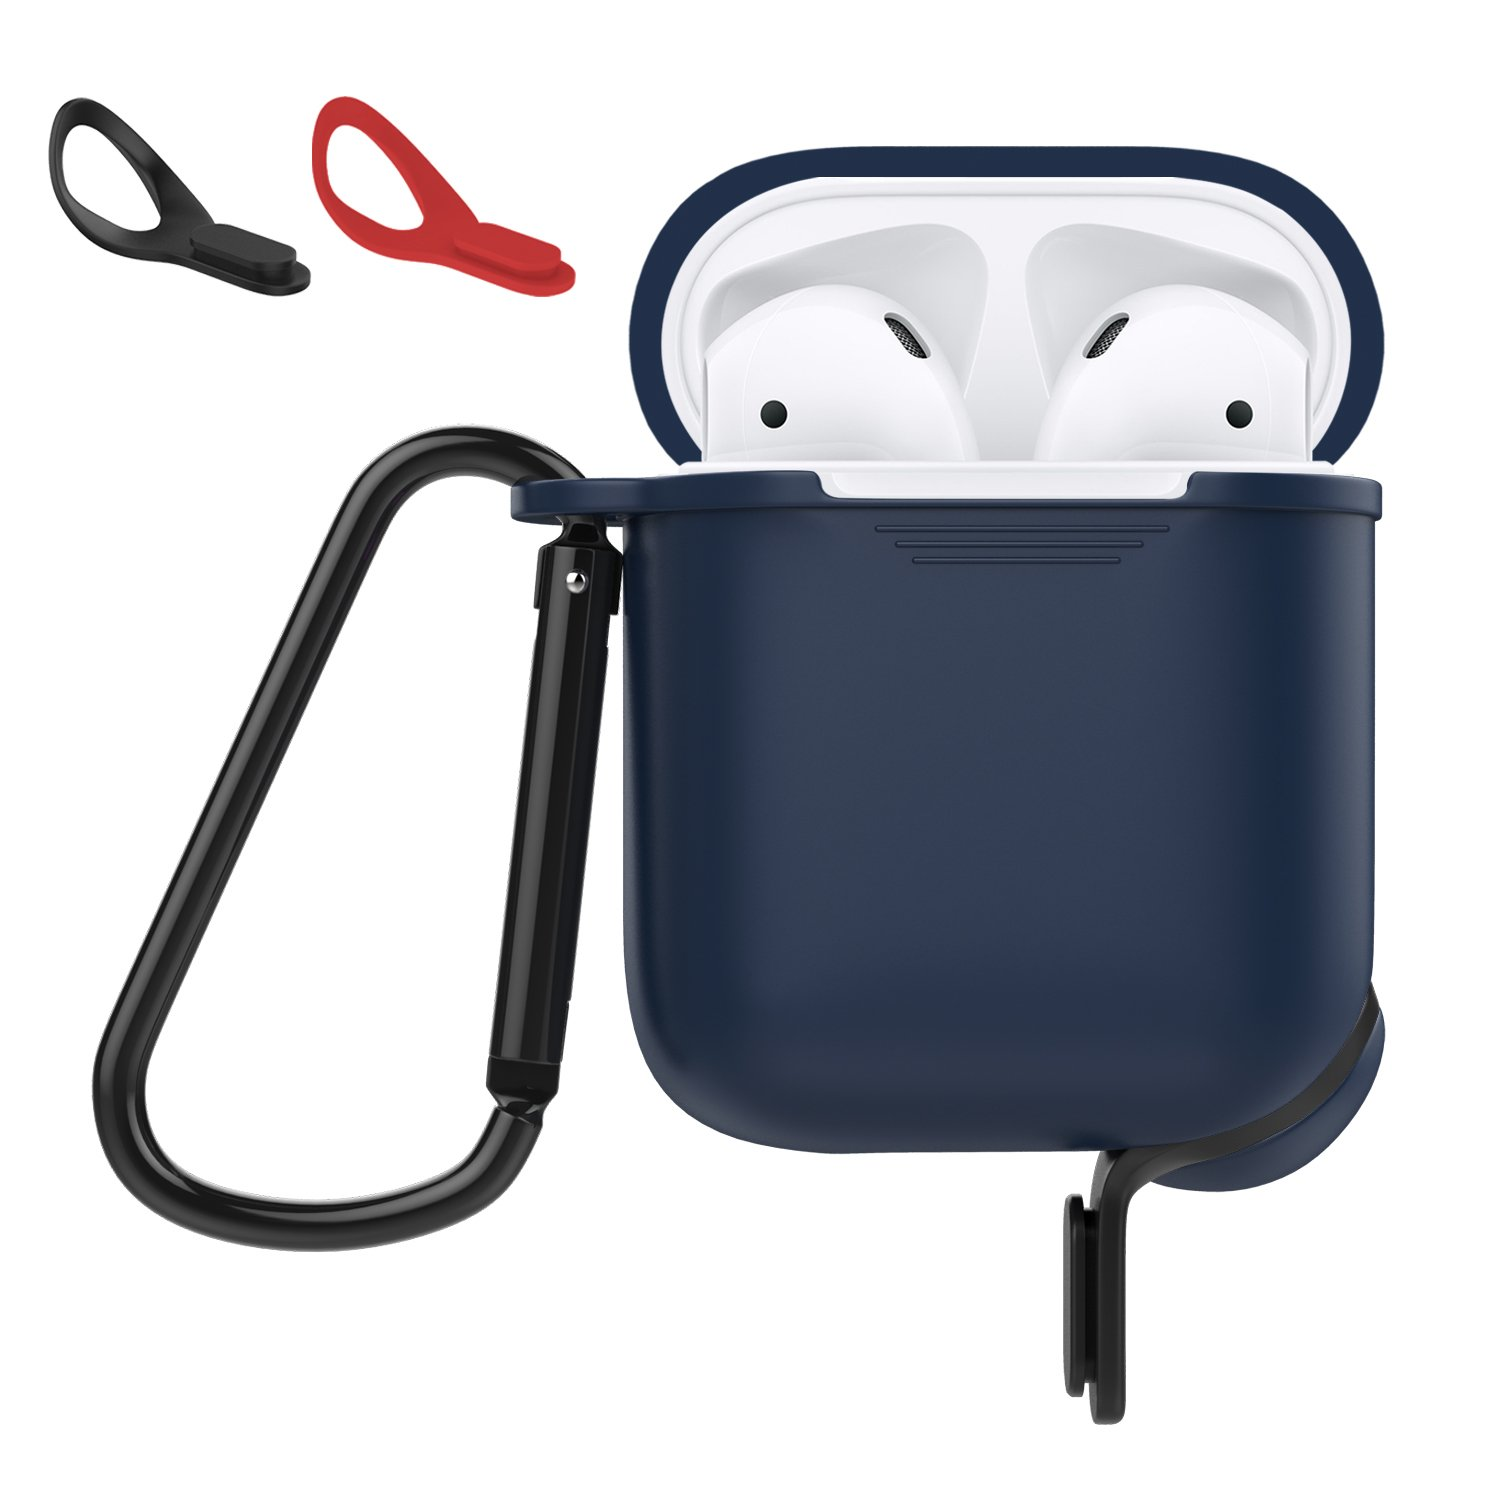 MoKo Protective Case Fit AirPods 1 & AirPods 2, Silicone Cover Shock Proof Protective Cover Skin with Carabiner & Dustproof Plug for Airpods Charging Case, Indigo